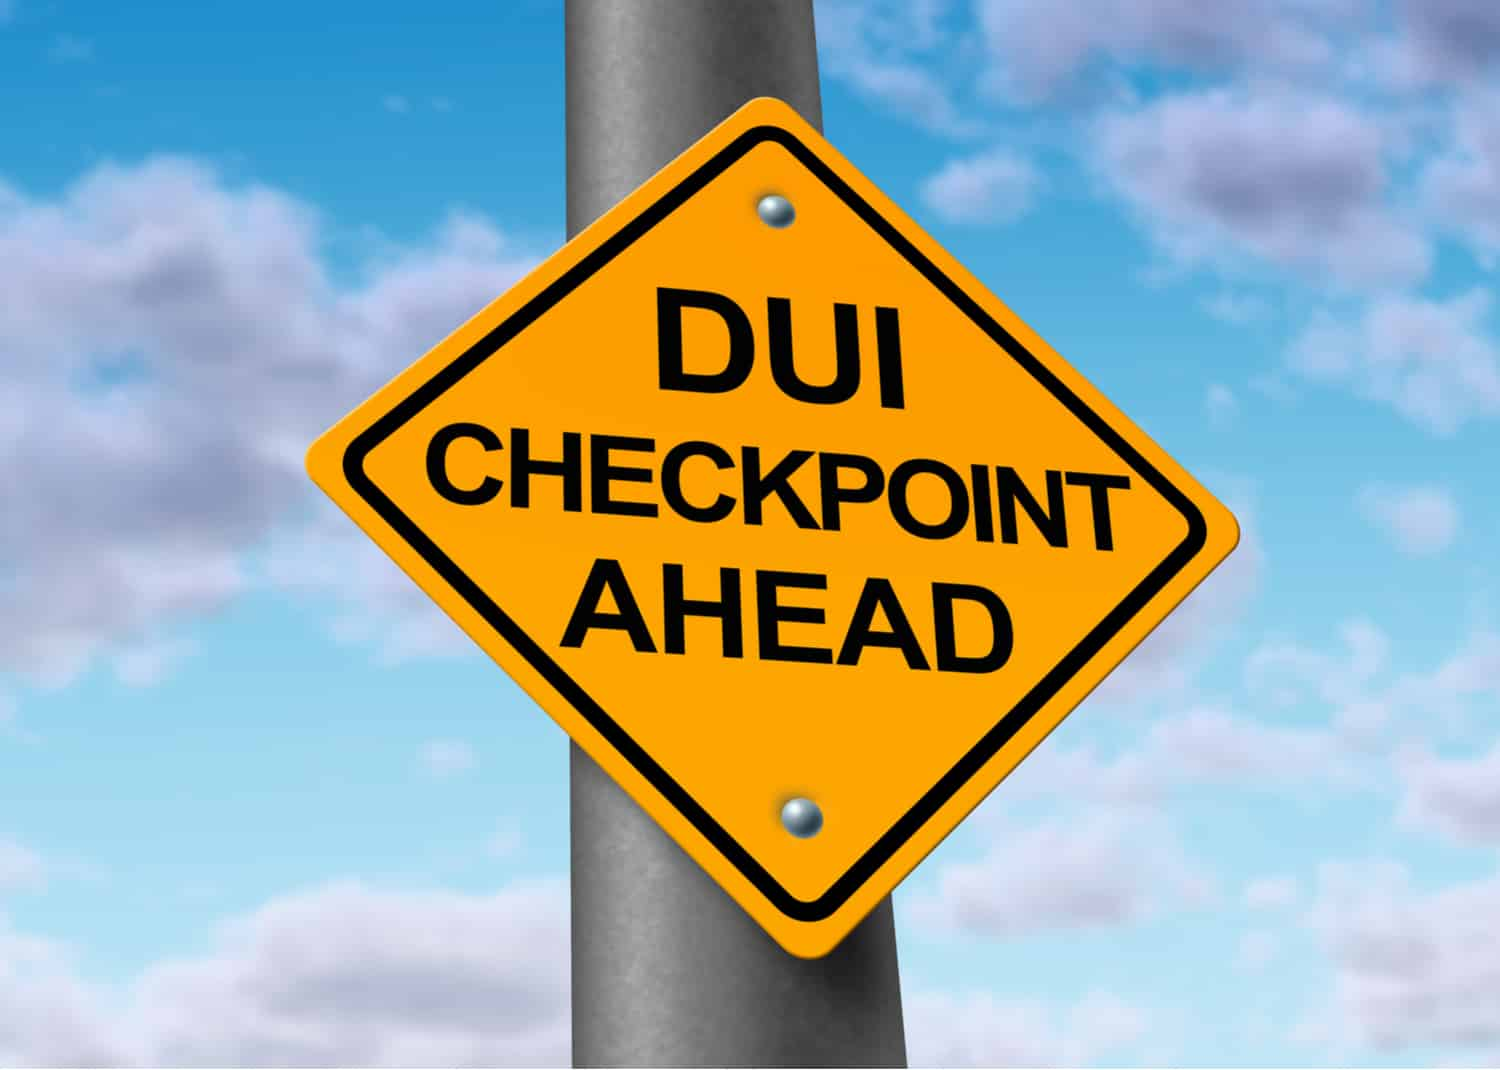 What are DUI Checkpoints?